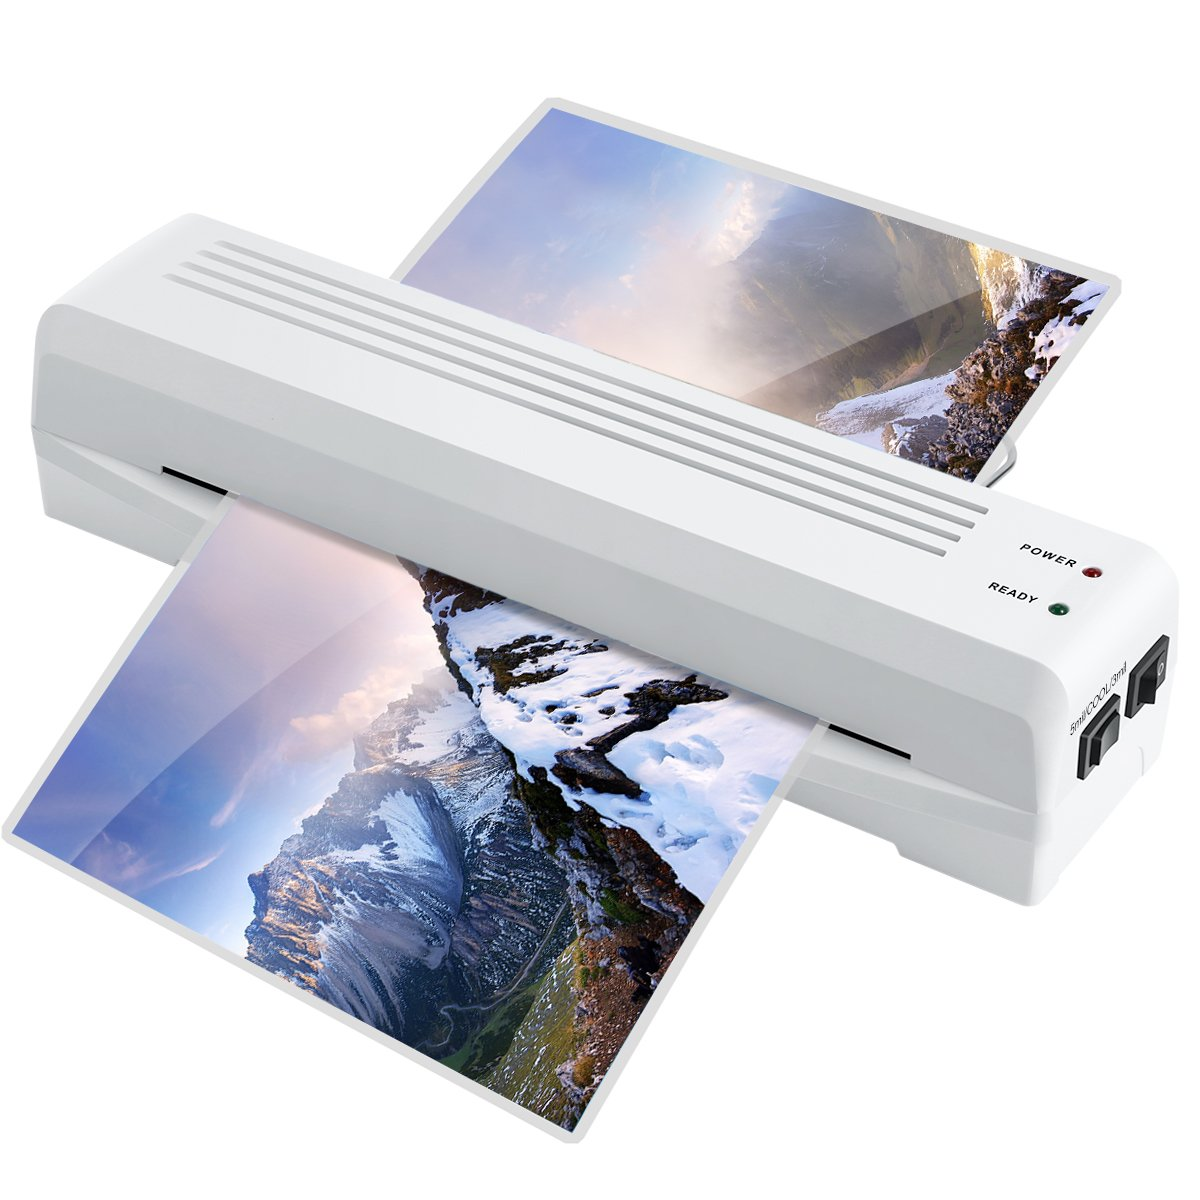 Thermal Laminator, Laminating Machine for A4 A6 with 2 Rollers System, Jam Release Switch Function, Low Noise Fast Warm-up Laminating Speed for Home Office School by Leyeet